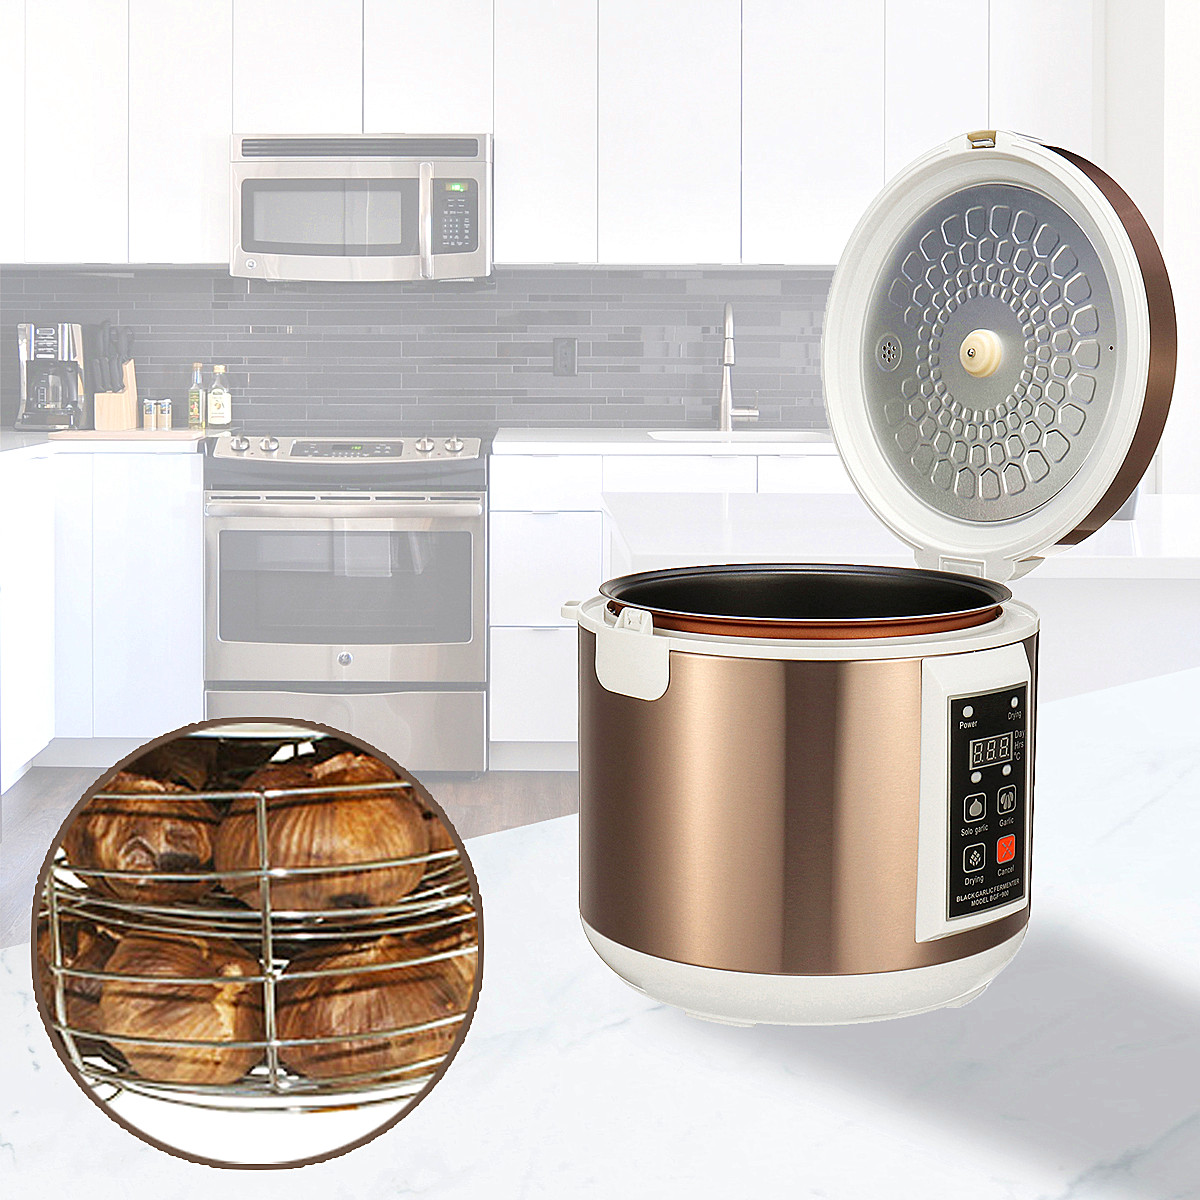 90w 5l Automatic Garlic Fermenter Ferment Box Black Maker Electric Blankets Rice Cooker Timer Circuit Free Electronic Circuits Notice 1please Allow 1 5mm Error Due To Manual Measurement Please Make Sure You Do Not Mind Before Bid 2the Colors May Have Different As The